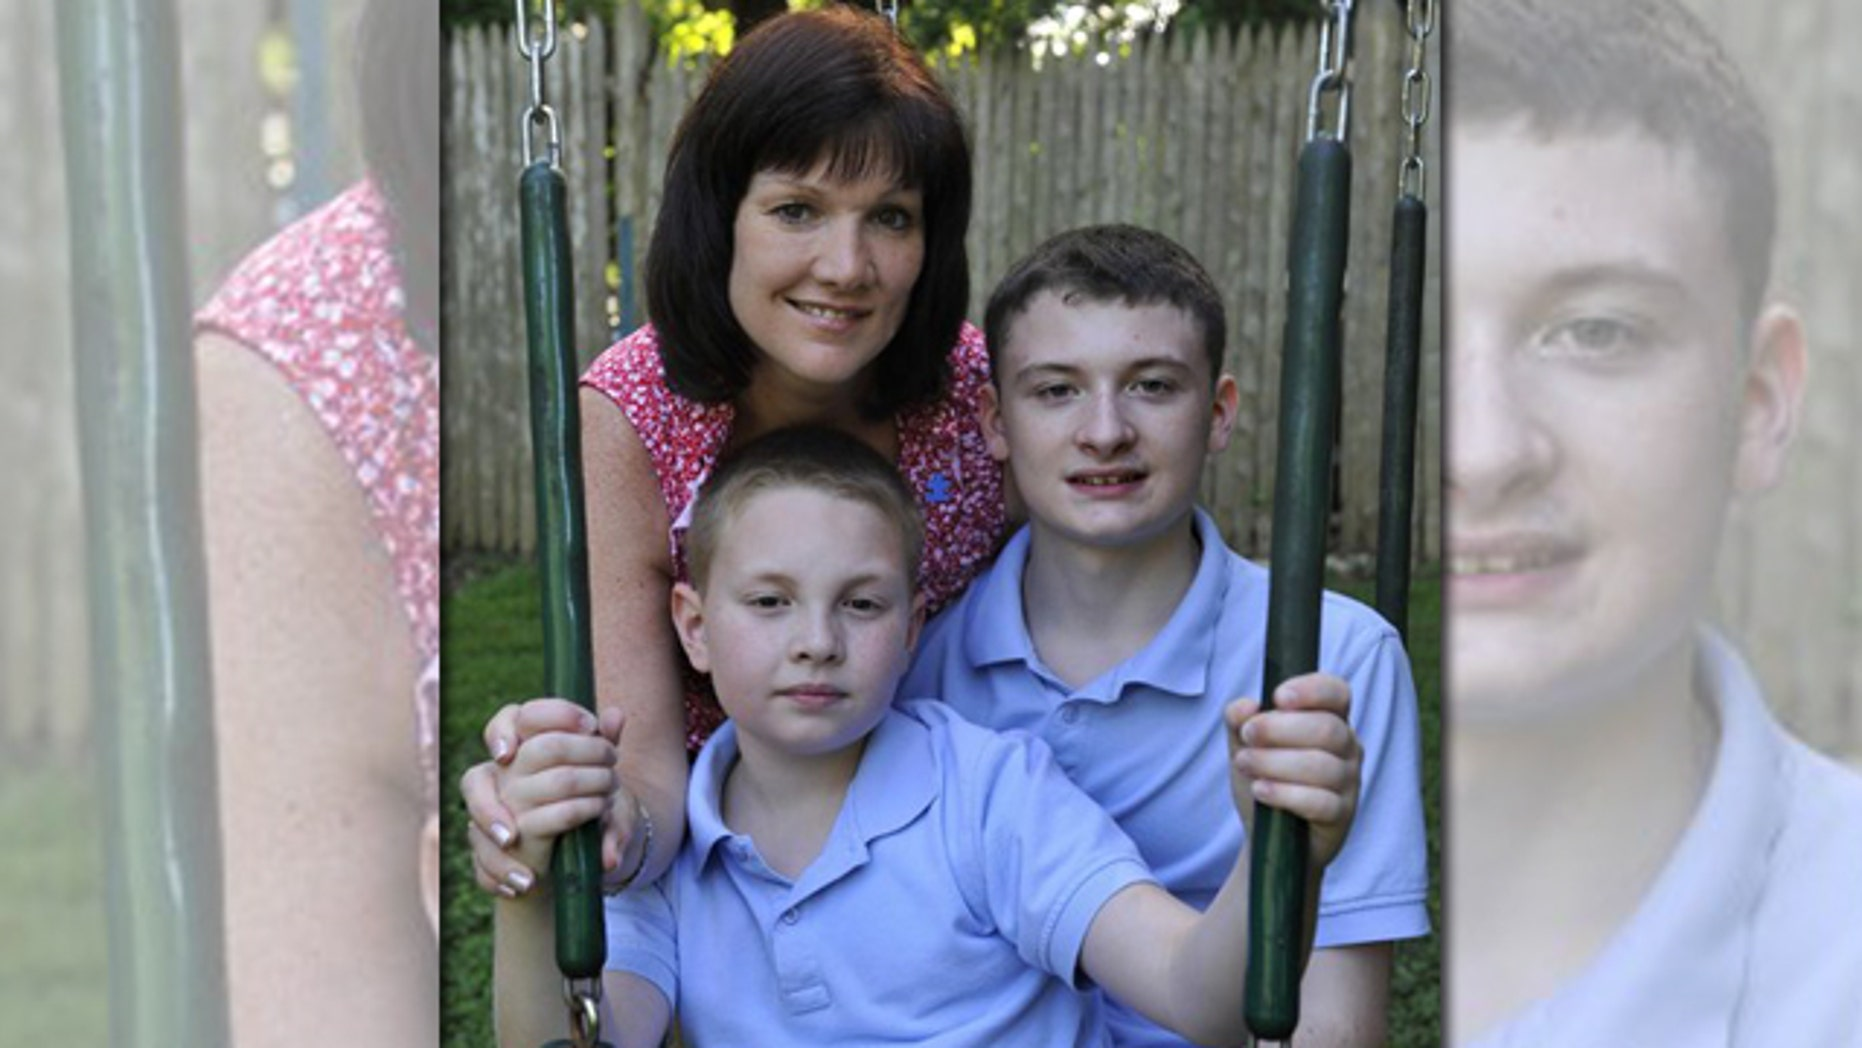 Kathleen Lanese of Kings Park, N.Y., poses with her two autistic sons Brendan, 14, right and Kevin, 10 at her sister-in-law's home on Thursday, Aug. 11, 2011, in Oyster Bay, N.Y. Lanese says having one son with autism didn't make her think twice about trying to have another child, even though she knew there was a chance the second would be affected, too.